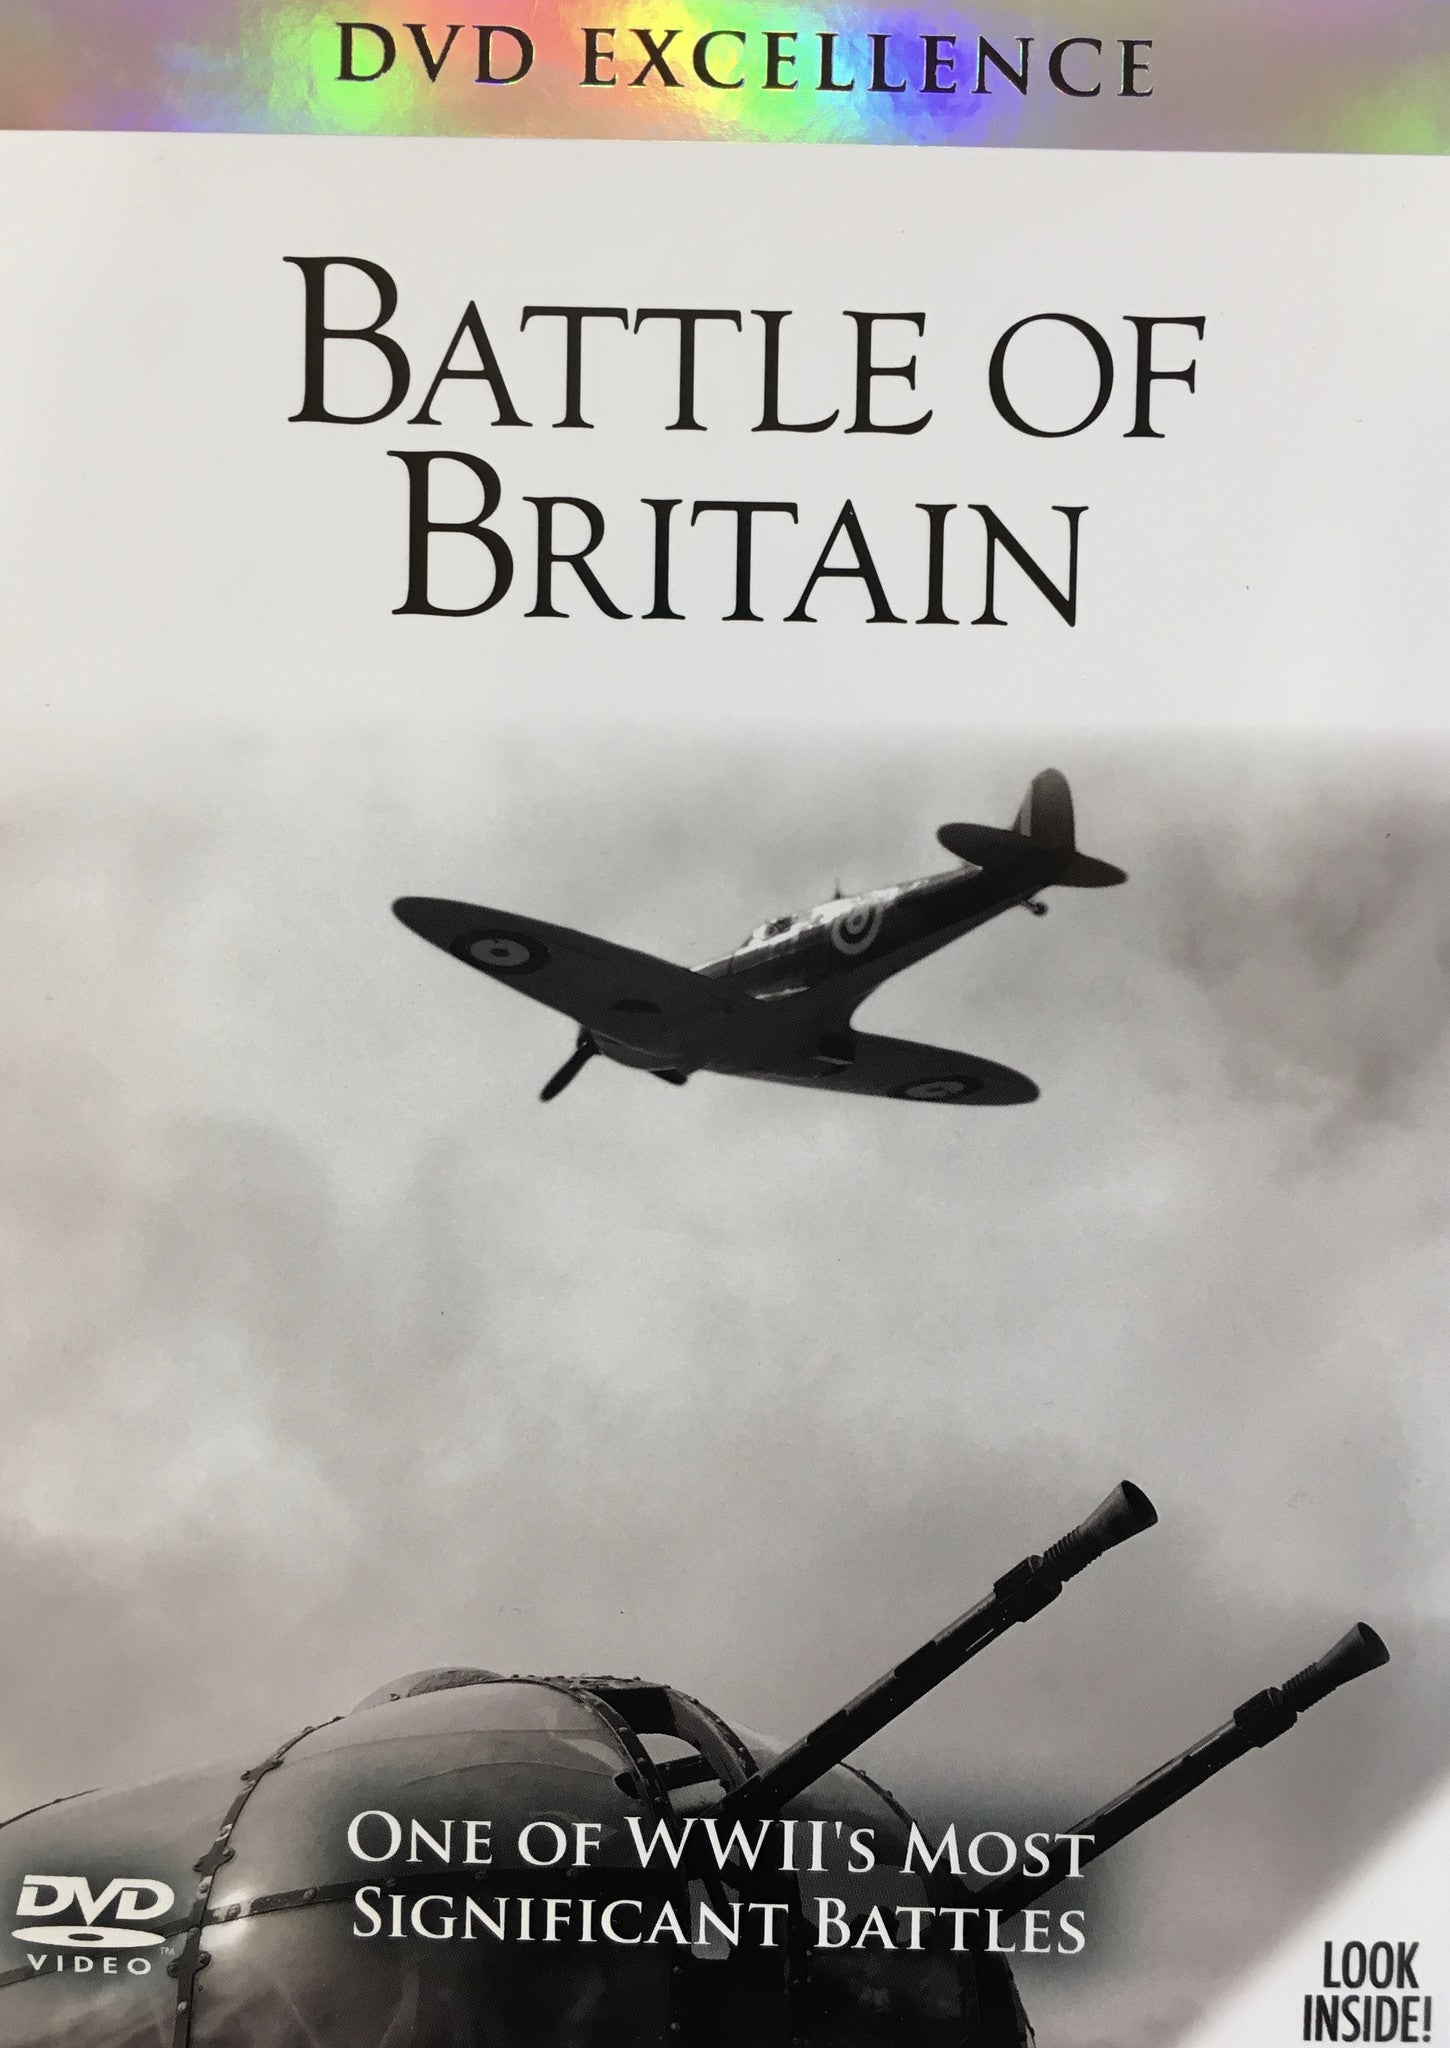 DVD, Battle of Britain